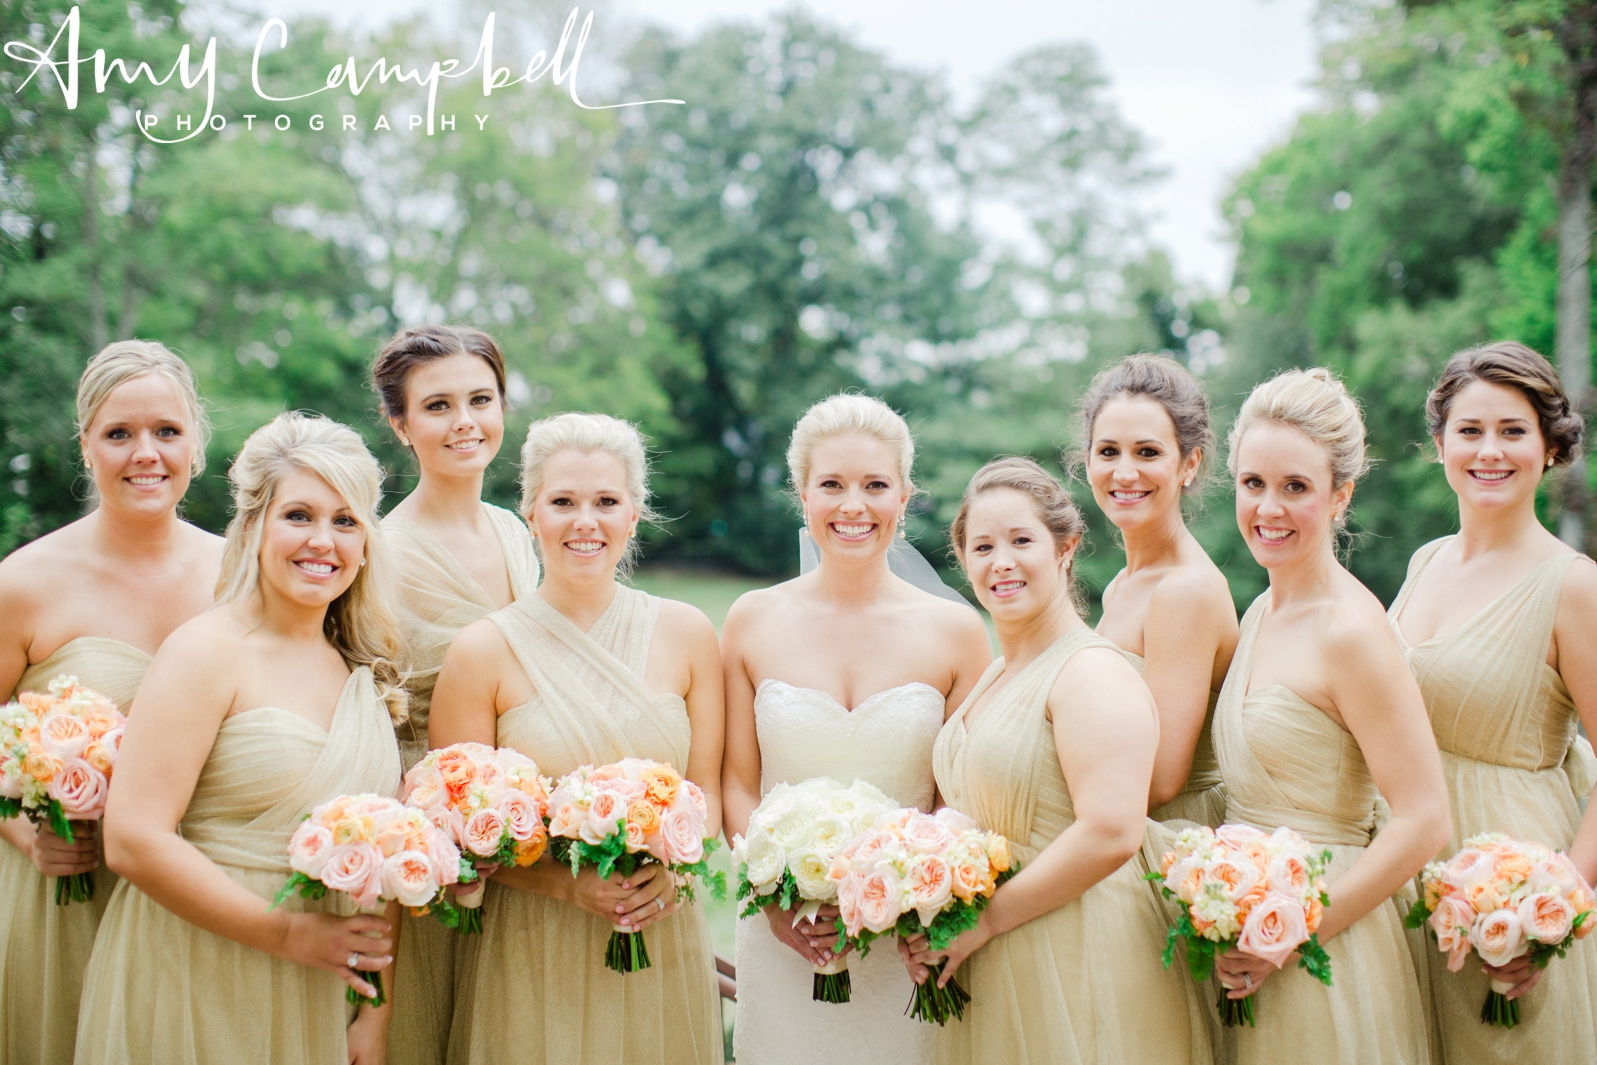 chelseamike_wedss_pics_amycampbellphotography_028.jpg